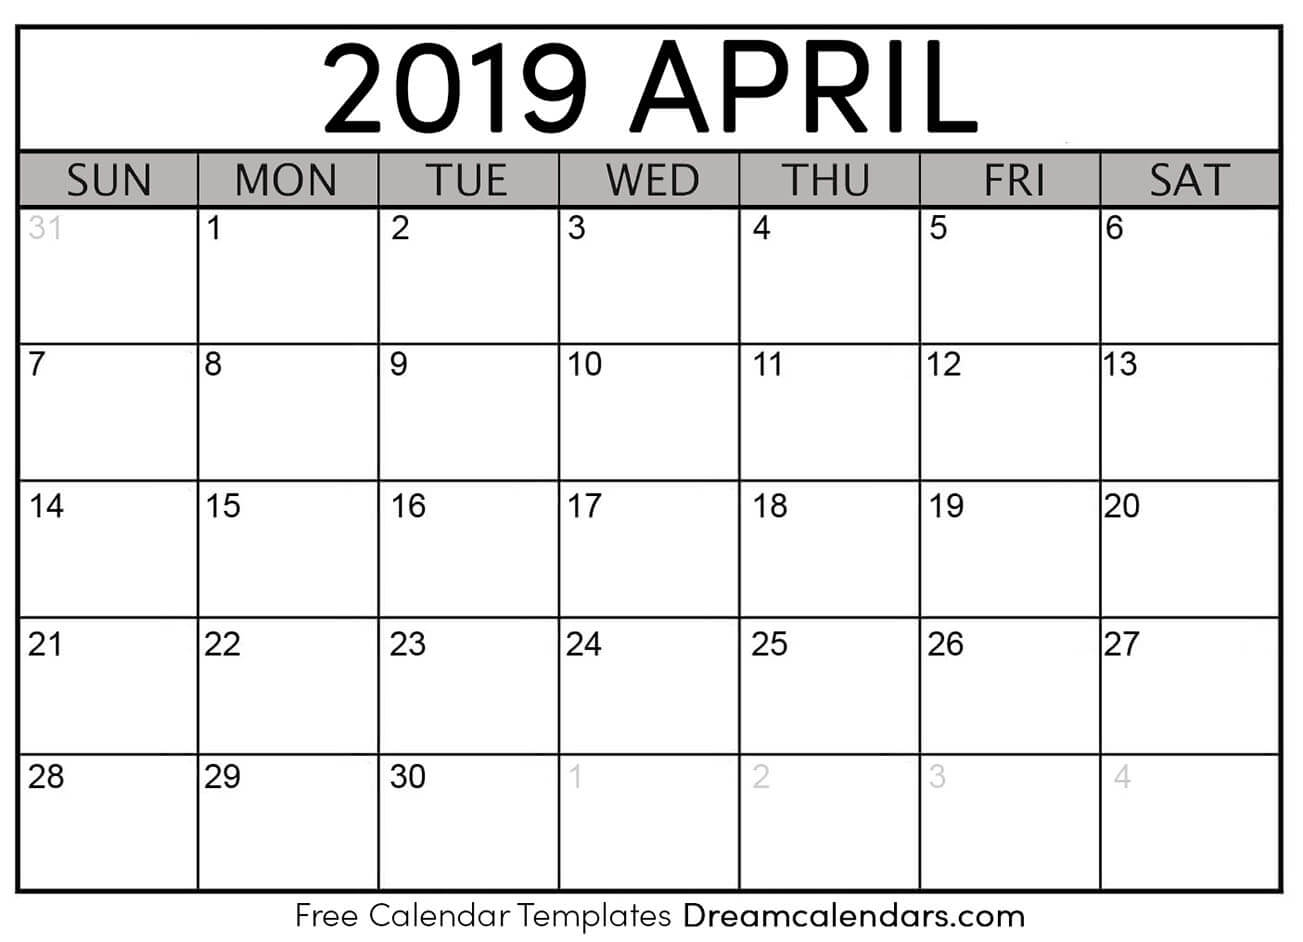 Free April 2019 Printable Calendar | Dream Calendars